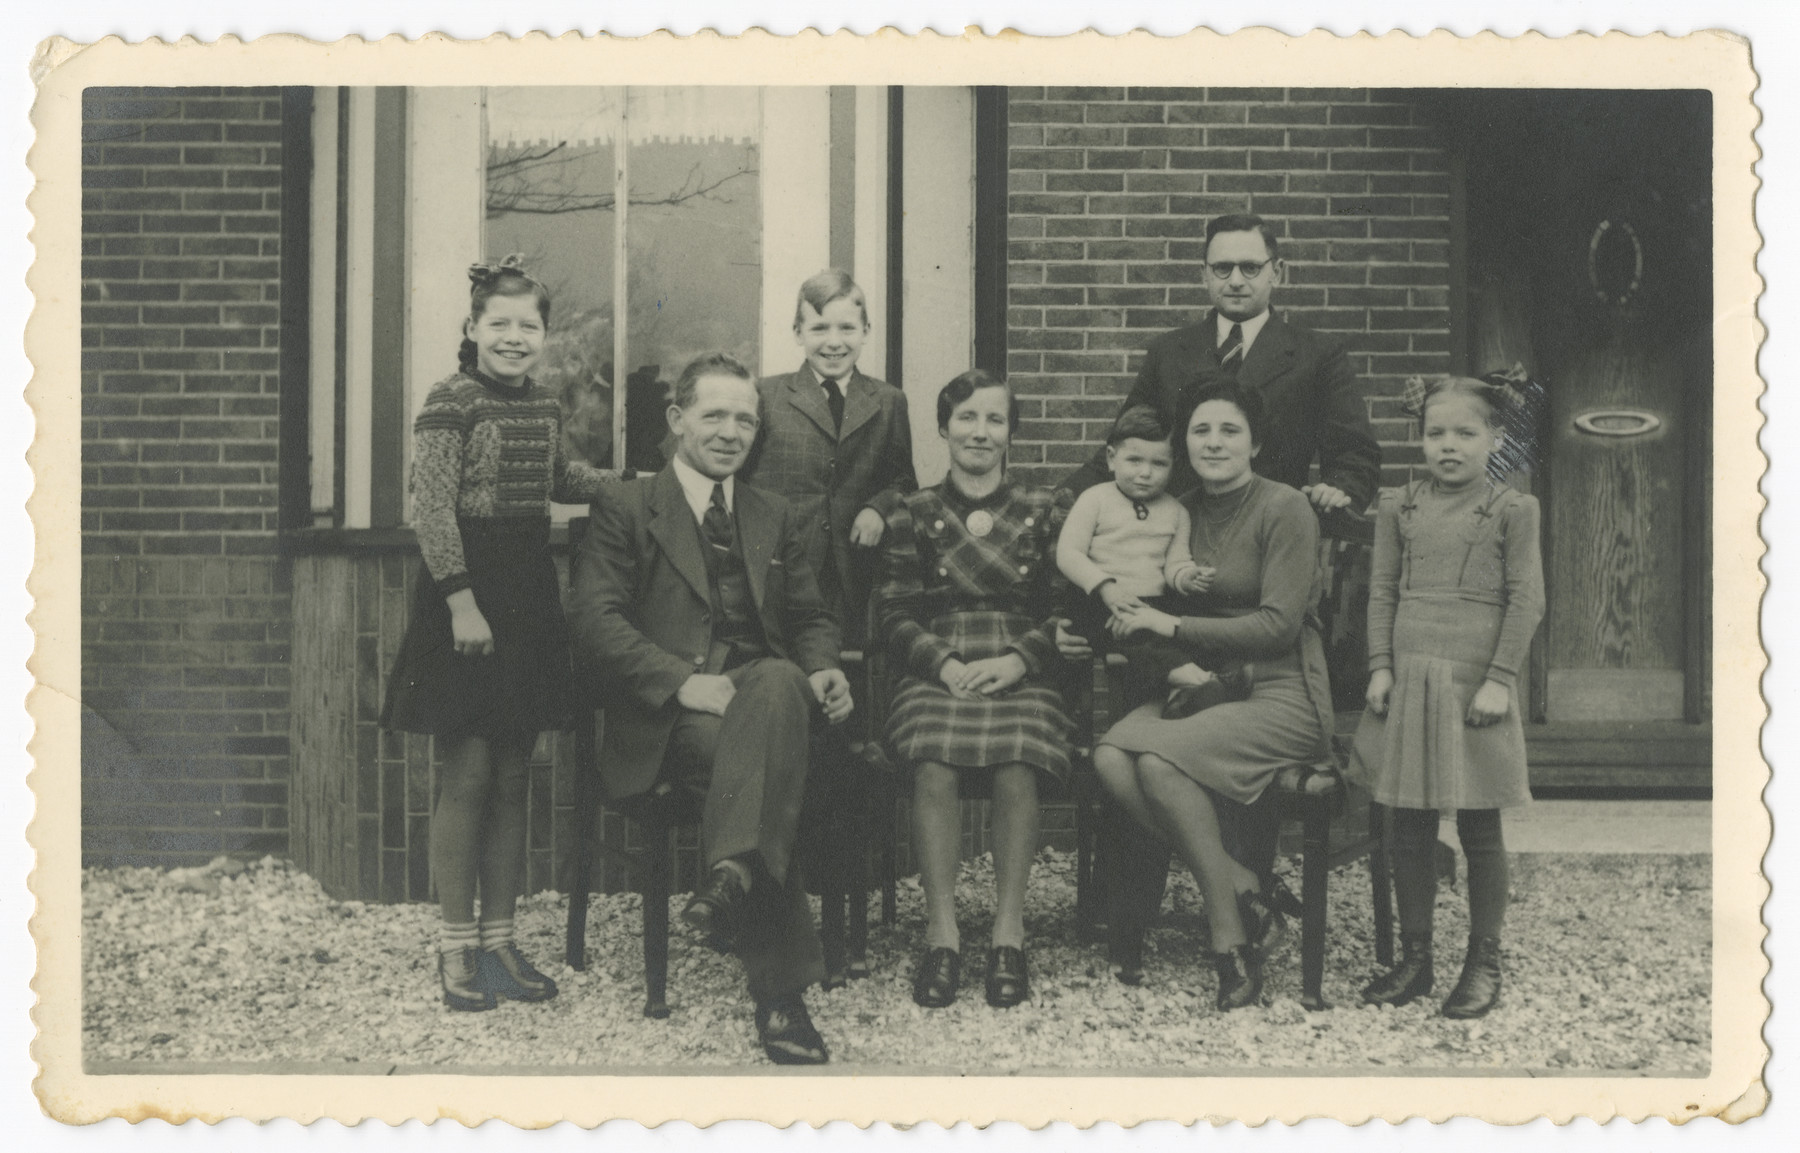 Rabbi Yitzhak Jewdwab, his wife Lena and son Aaron pose with the family of their rescuers, the Wevers after liberation.  Lena Jedwab knit the sweater of the older daughter on the left.